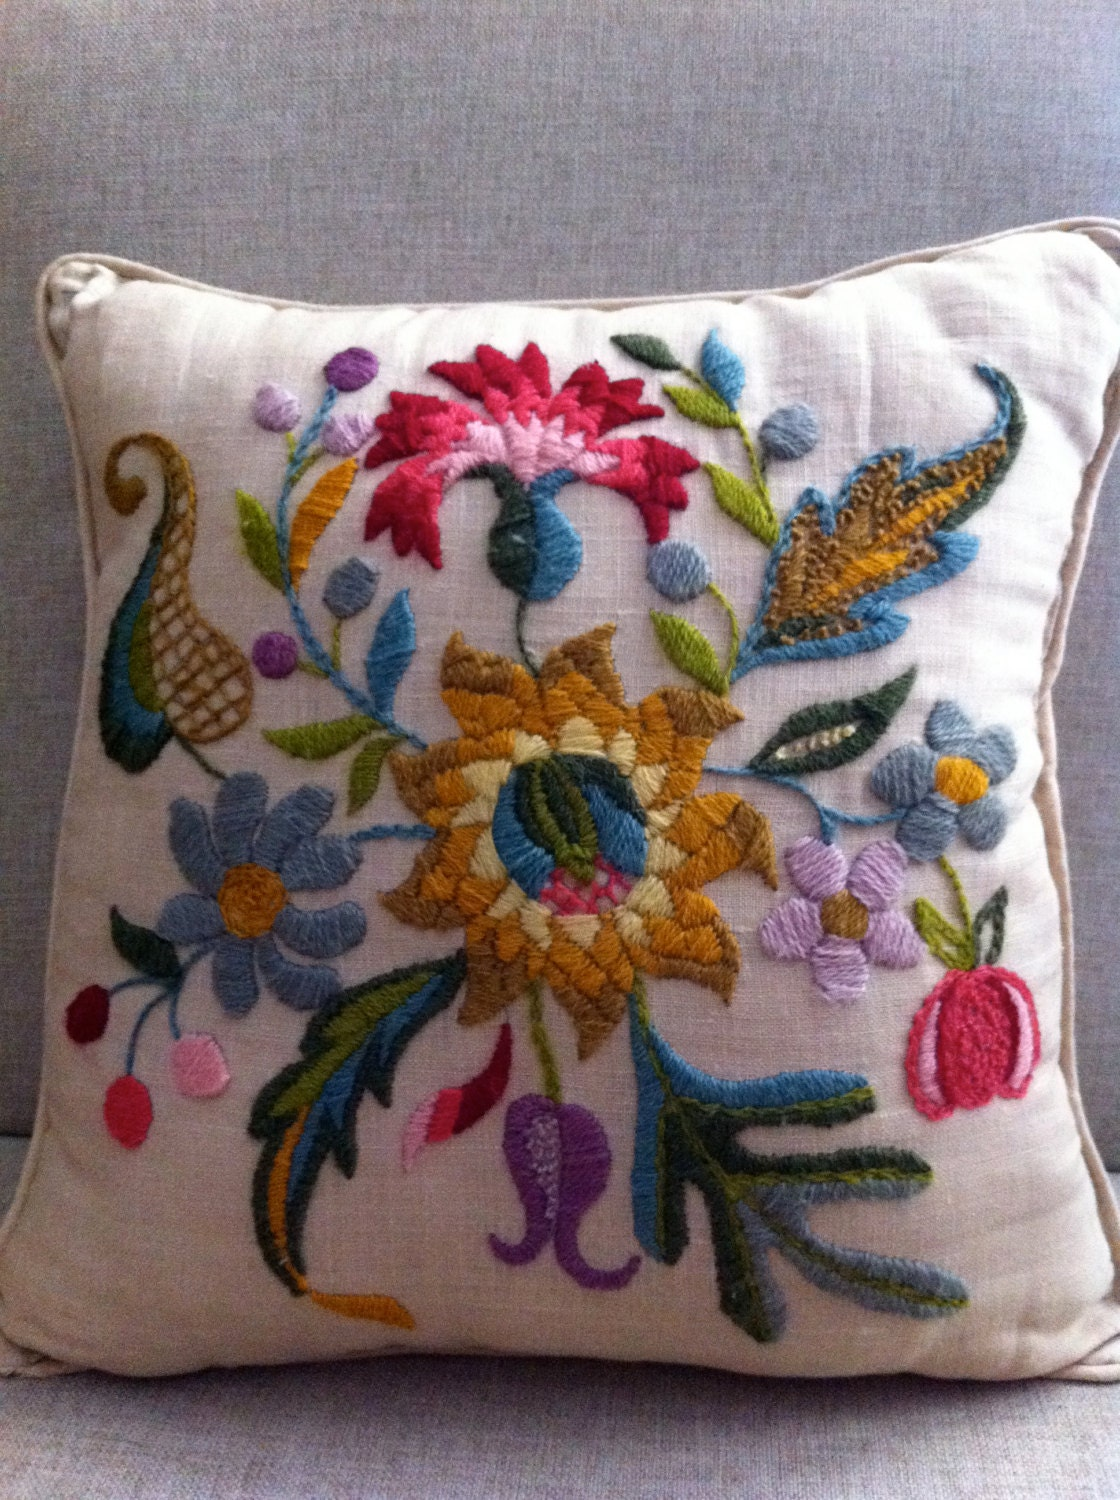 Vintage crewel work pillow flower power for Vintage sites like etsy